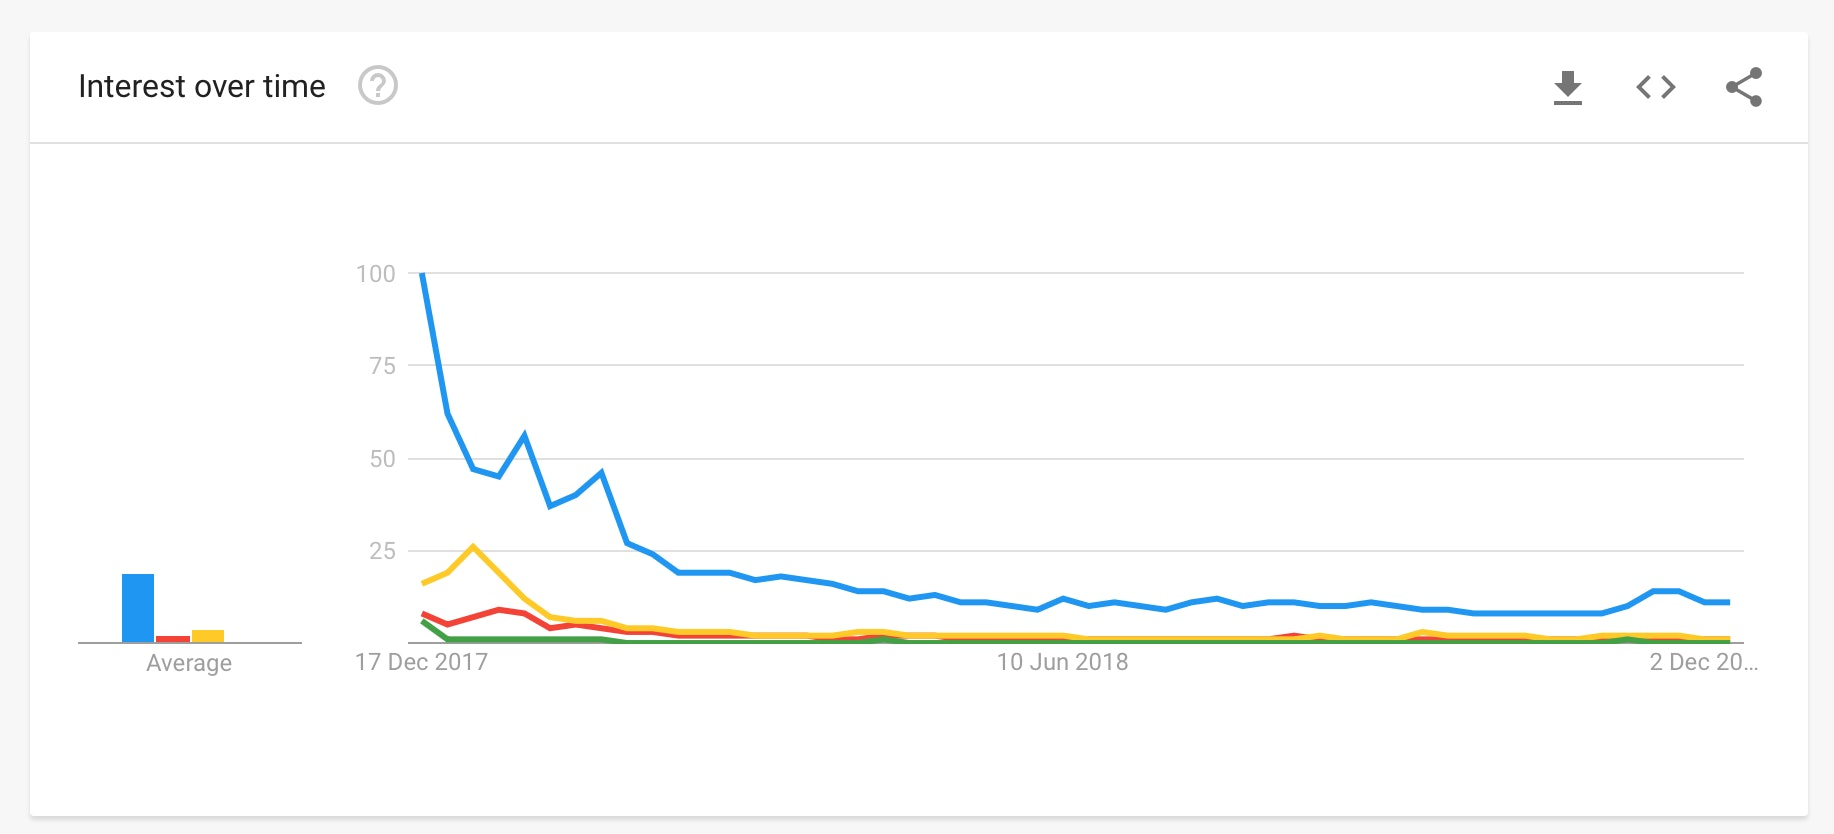 Bitcoin Google trends over time.